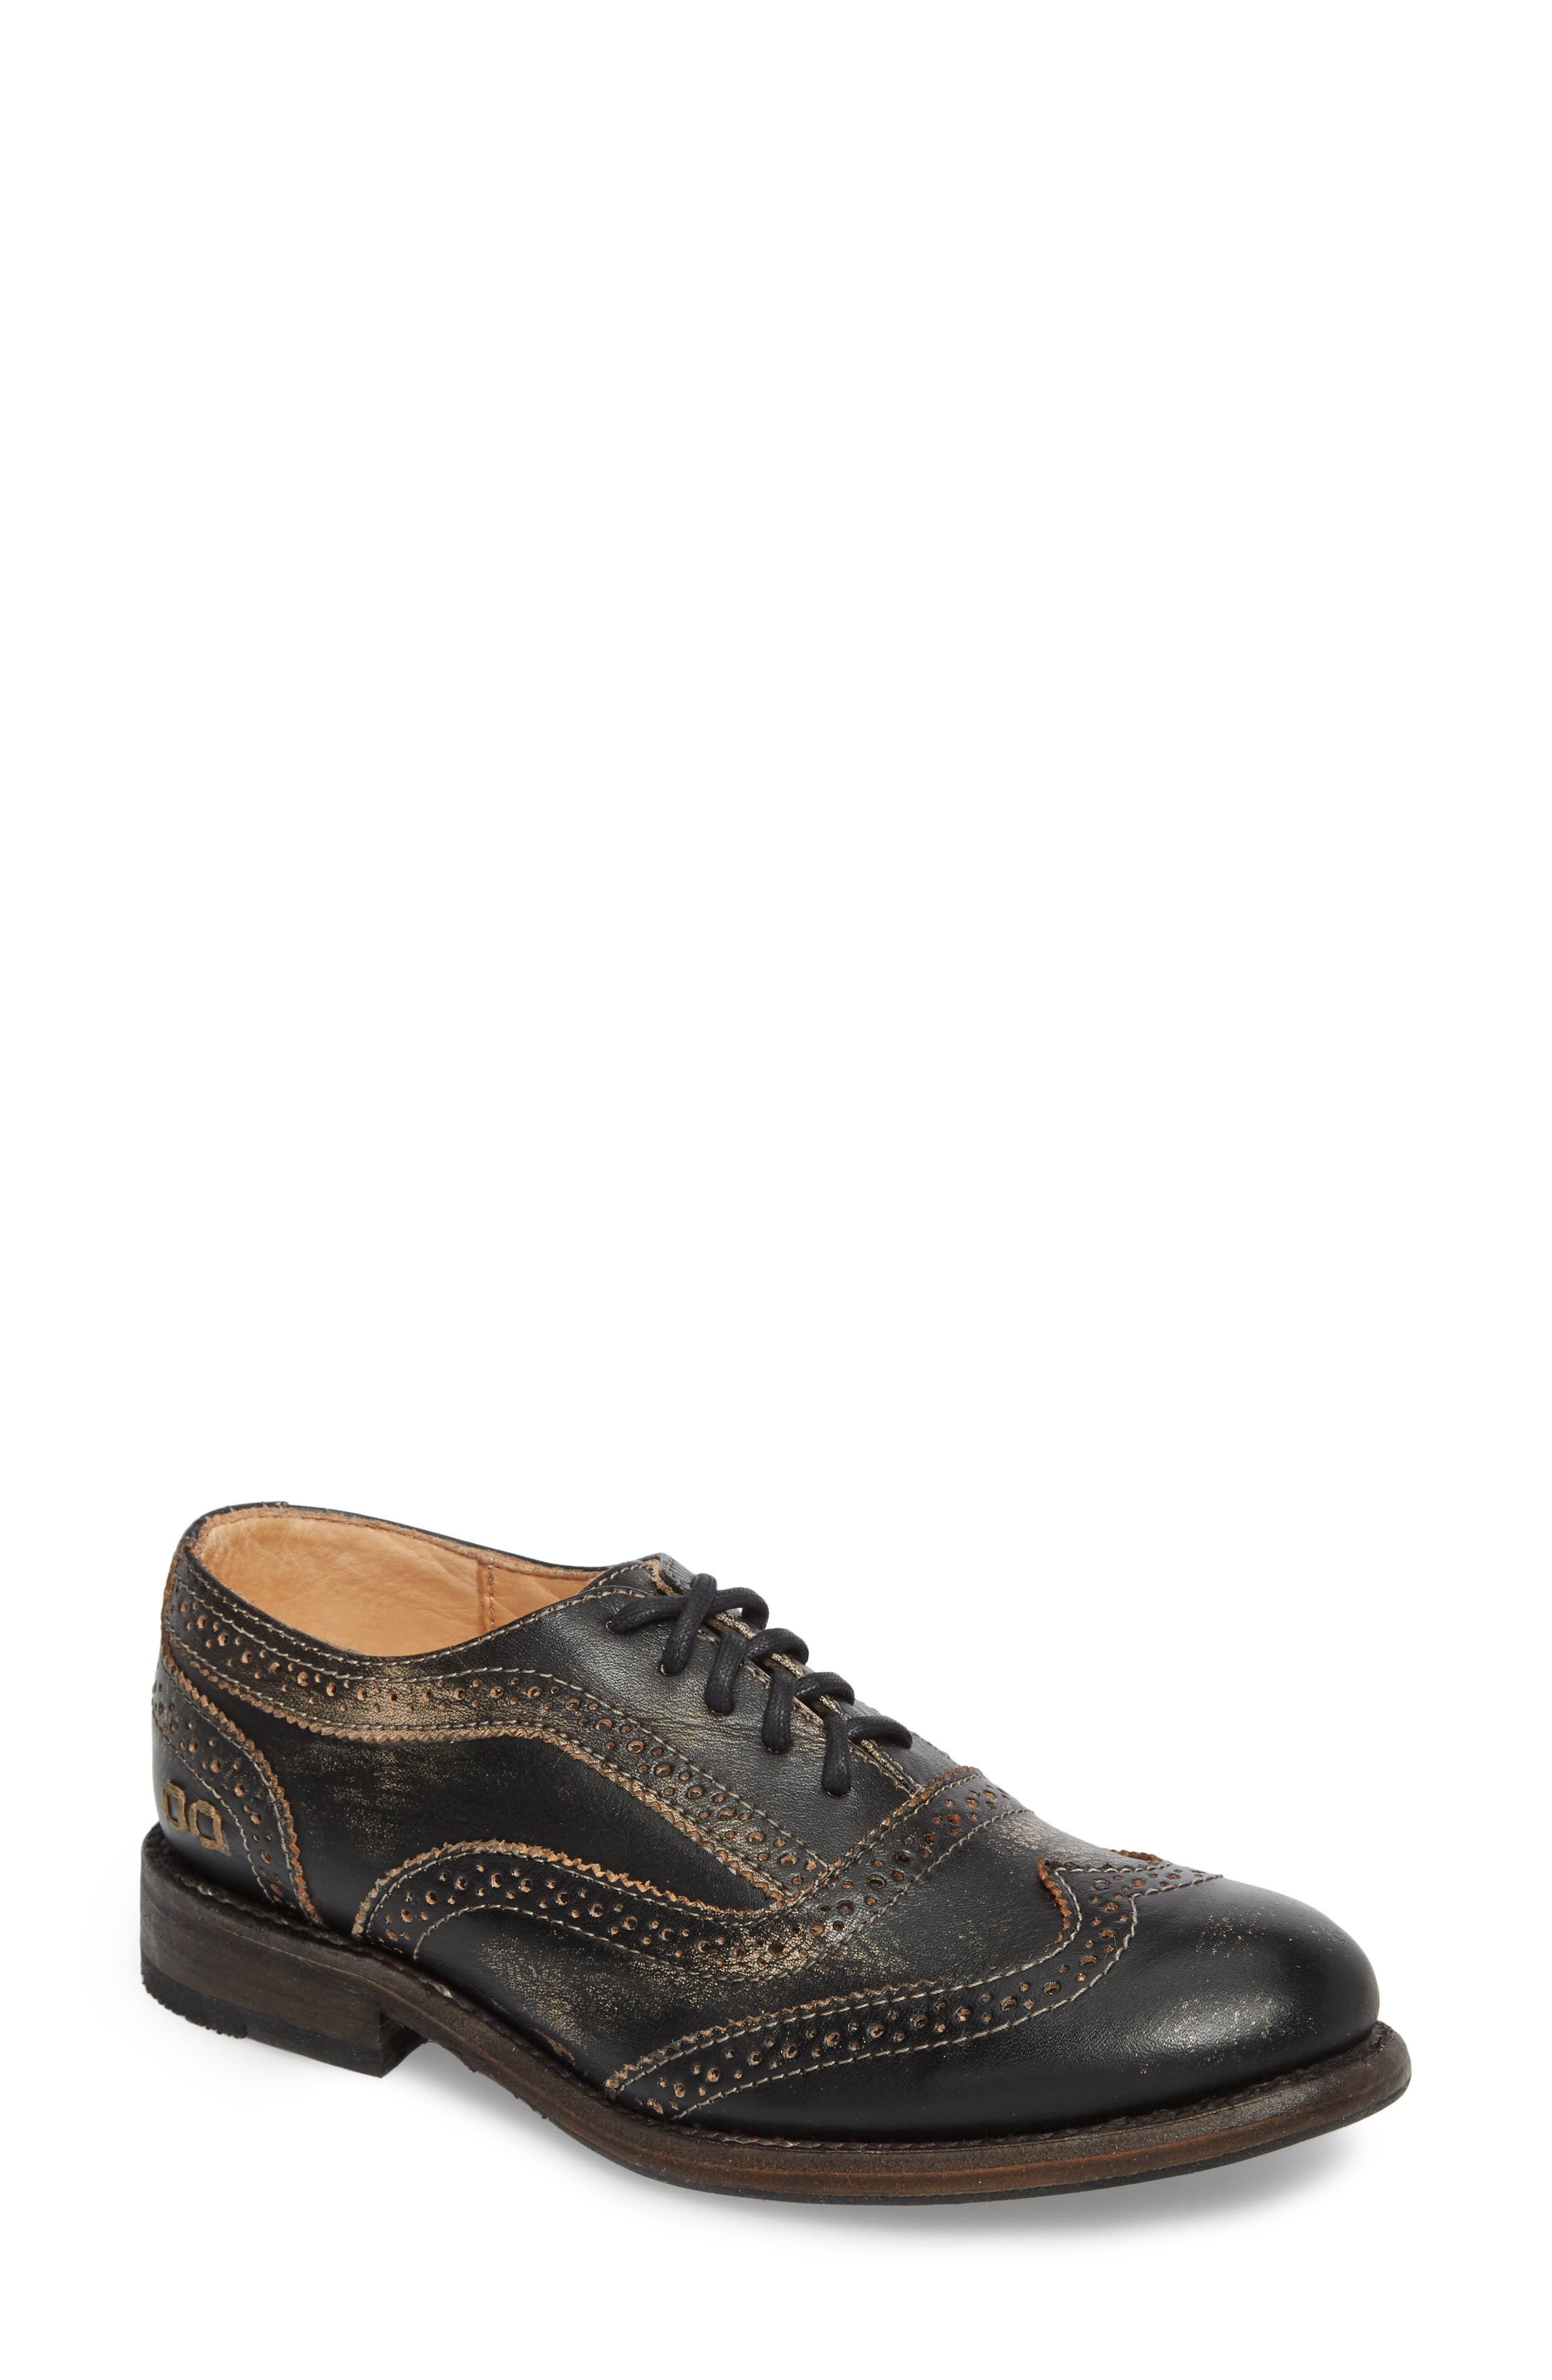 Bed Stu 'Lita' Oxford